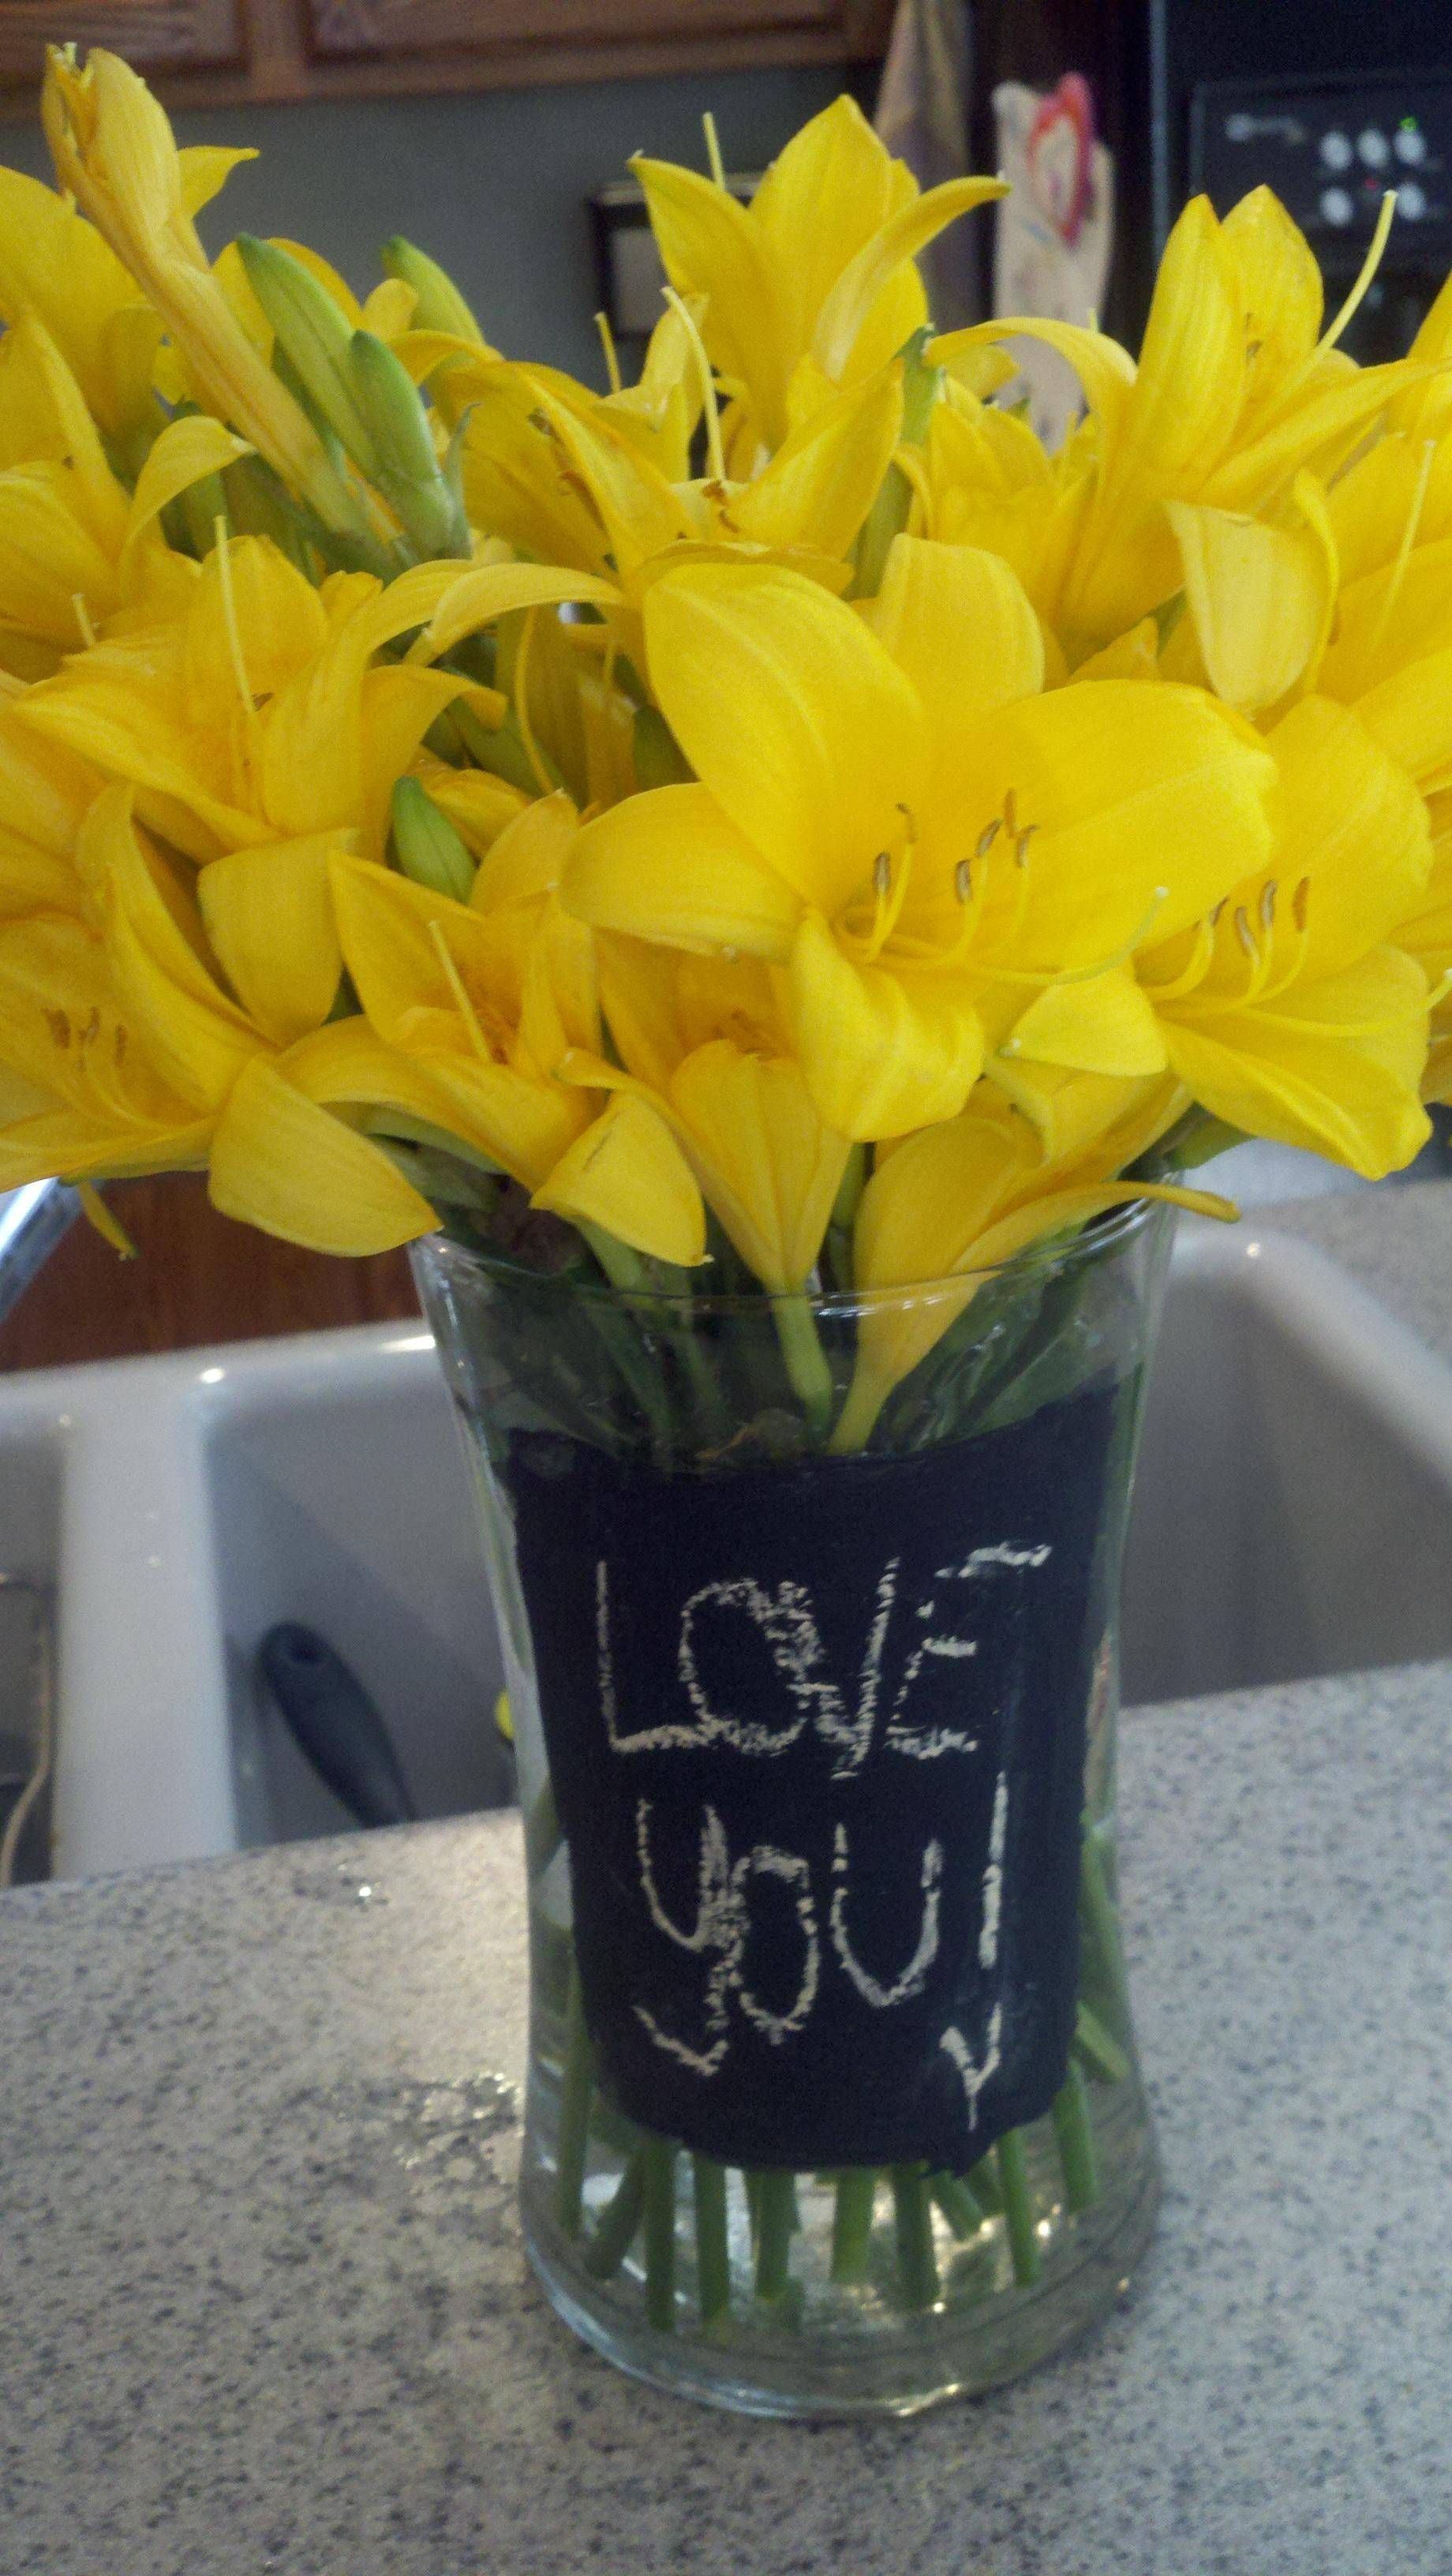 Chalk board paint on vase so you can change message to match the